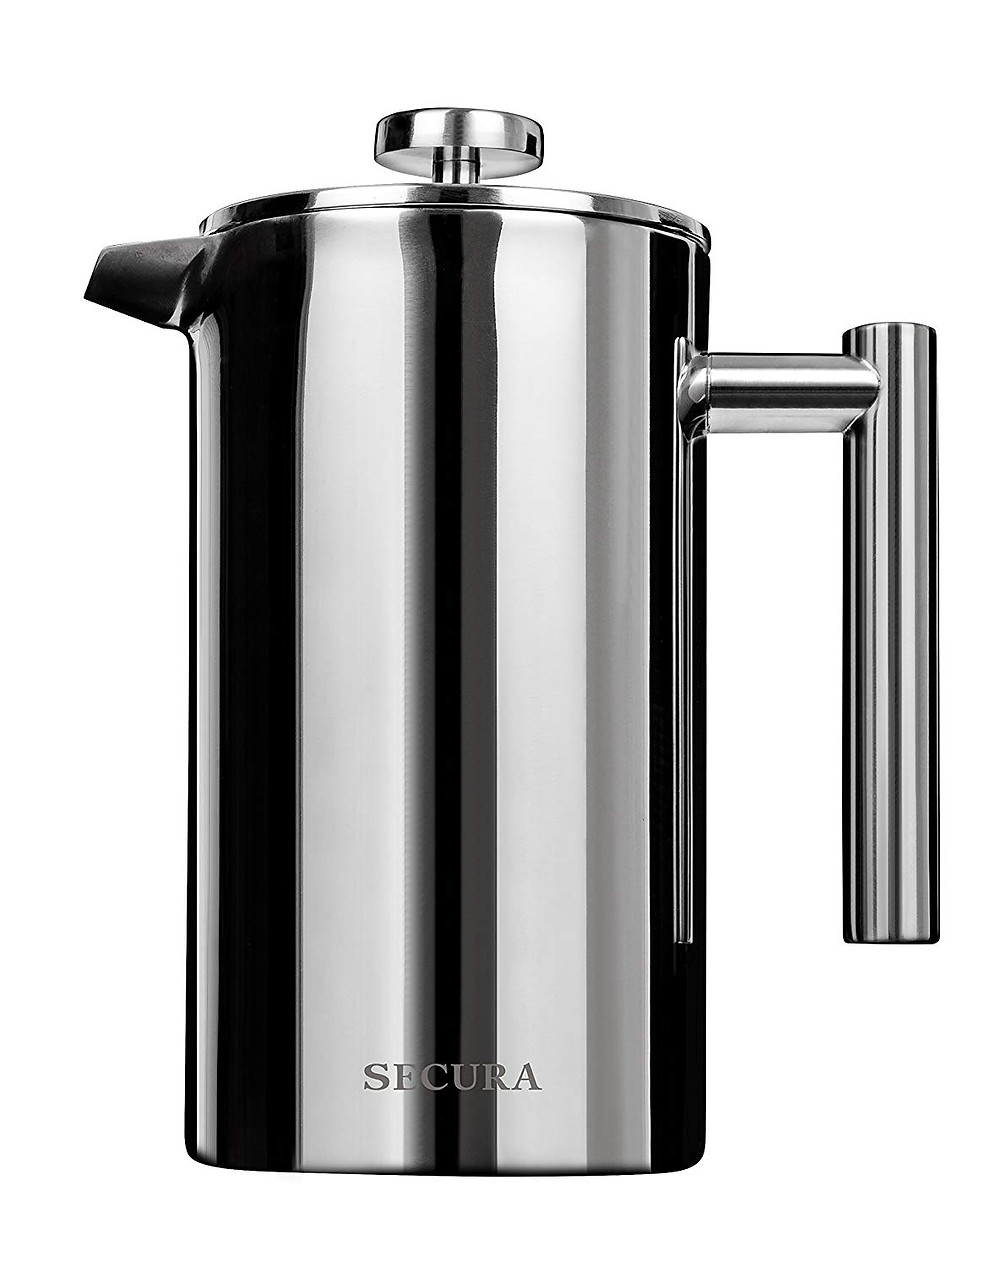 Secura french press is the perfect small space solution to a great cup of coffee